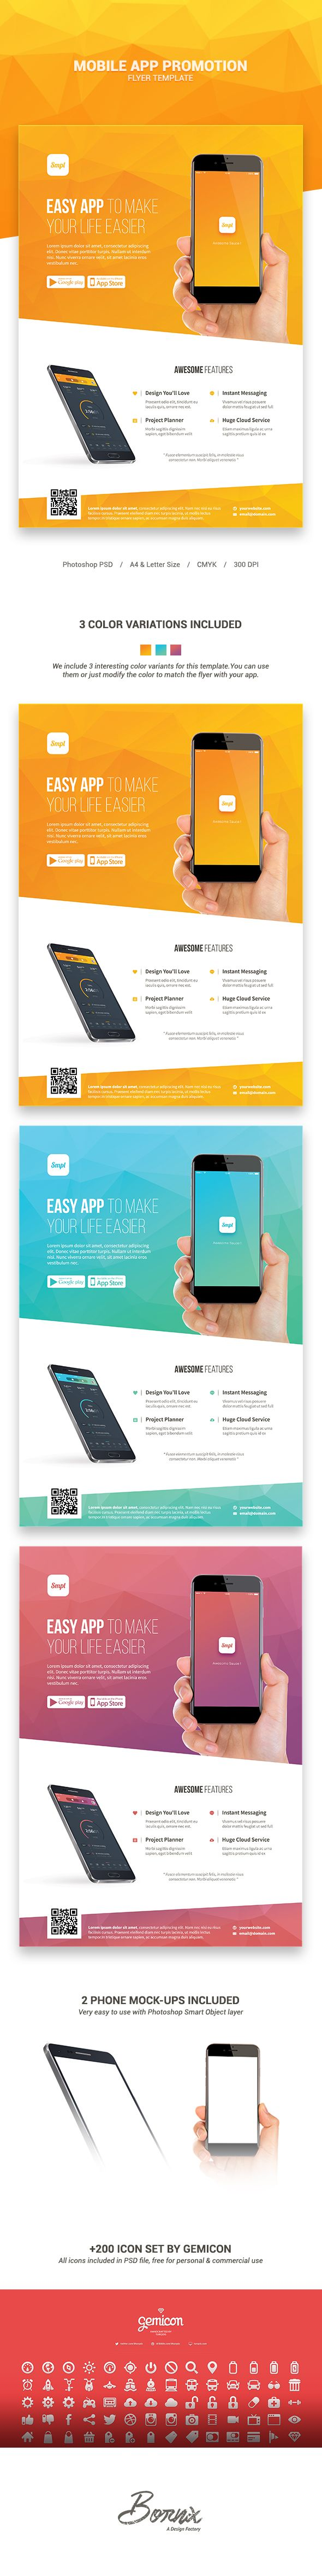 Clean, modern, & professional Photoshop flyer template perfect to promote your mobile apps.2 formats available, A4 & Letter flyer with 3 interesting color variants.Customizable and very easy to use. #graphic #design #poster #flyer #promotion #app #mobile #commerce #corporater #graphicriver #envato #market #creative